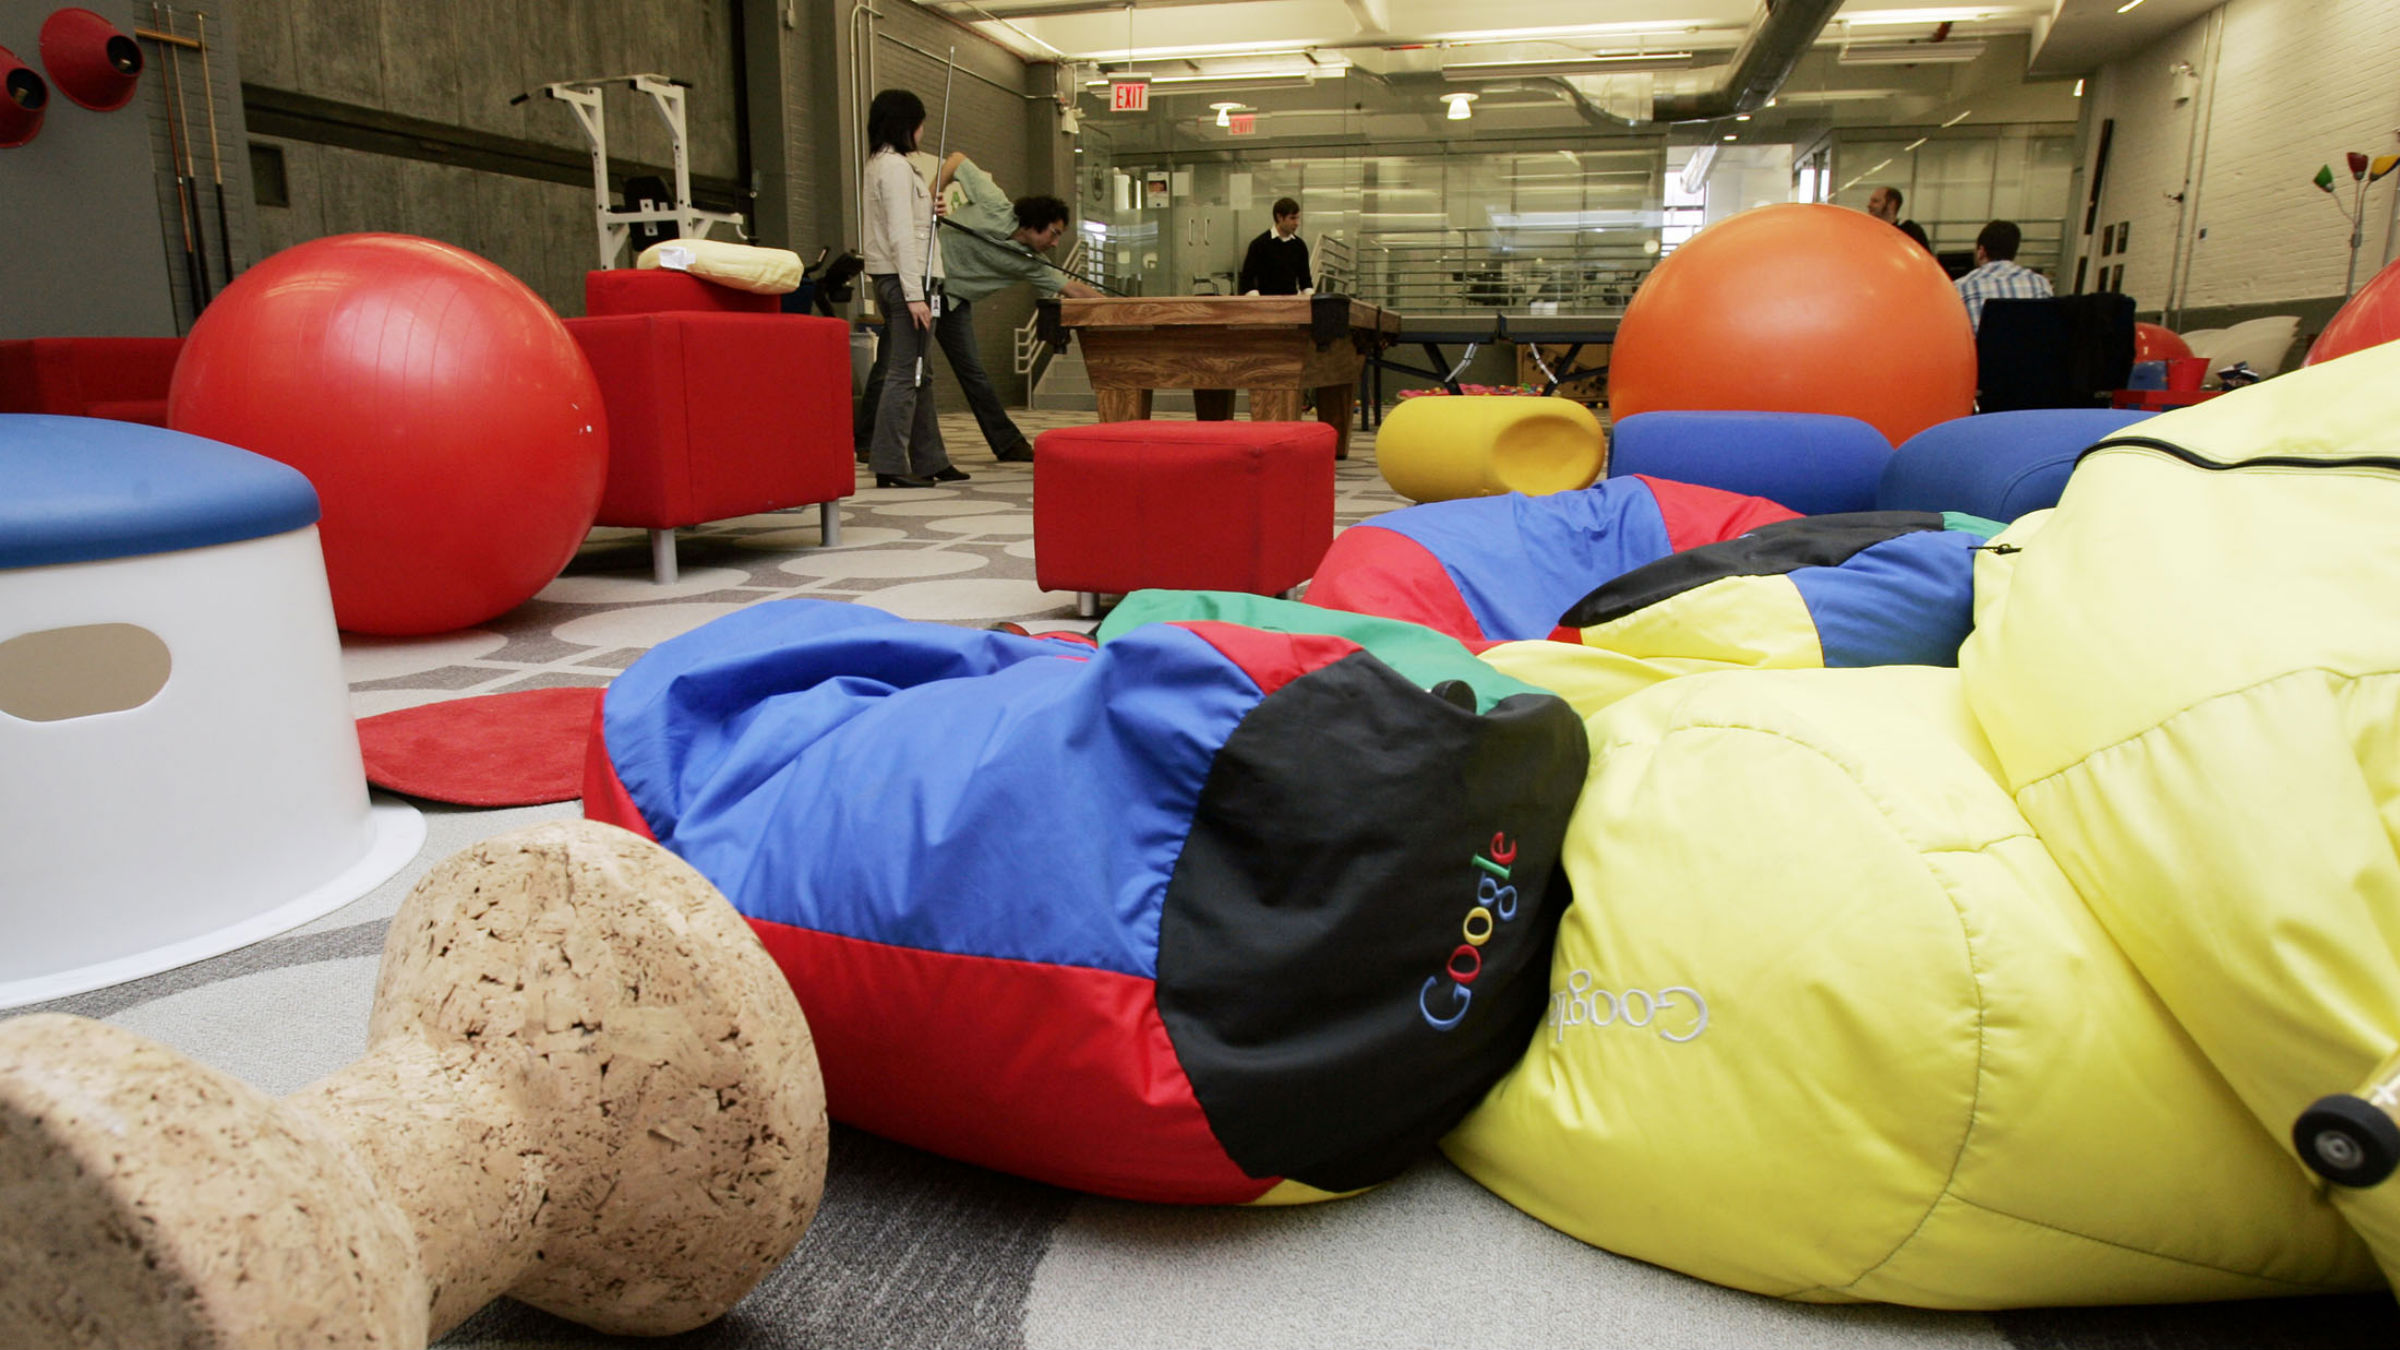 A view of the game room at the New York City offices of Google , March 10, 2008.